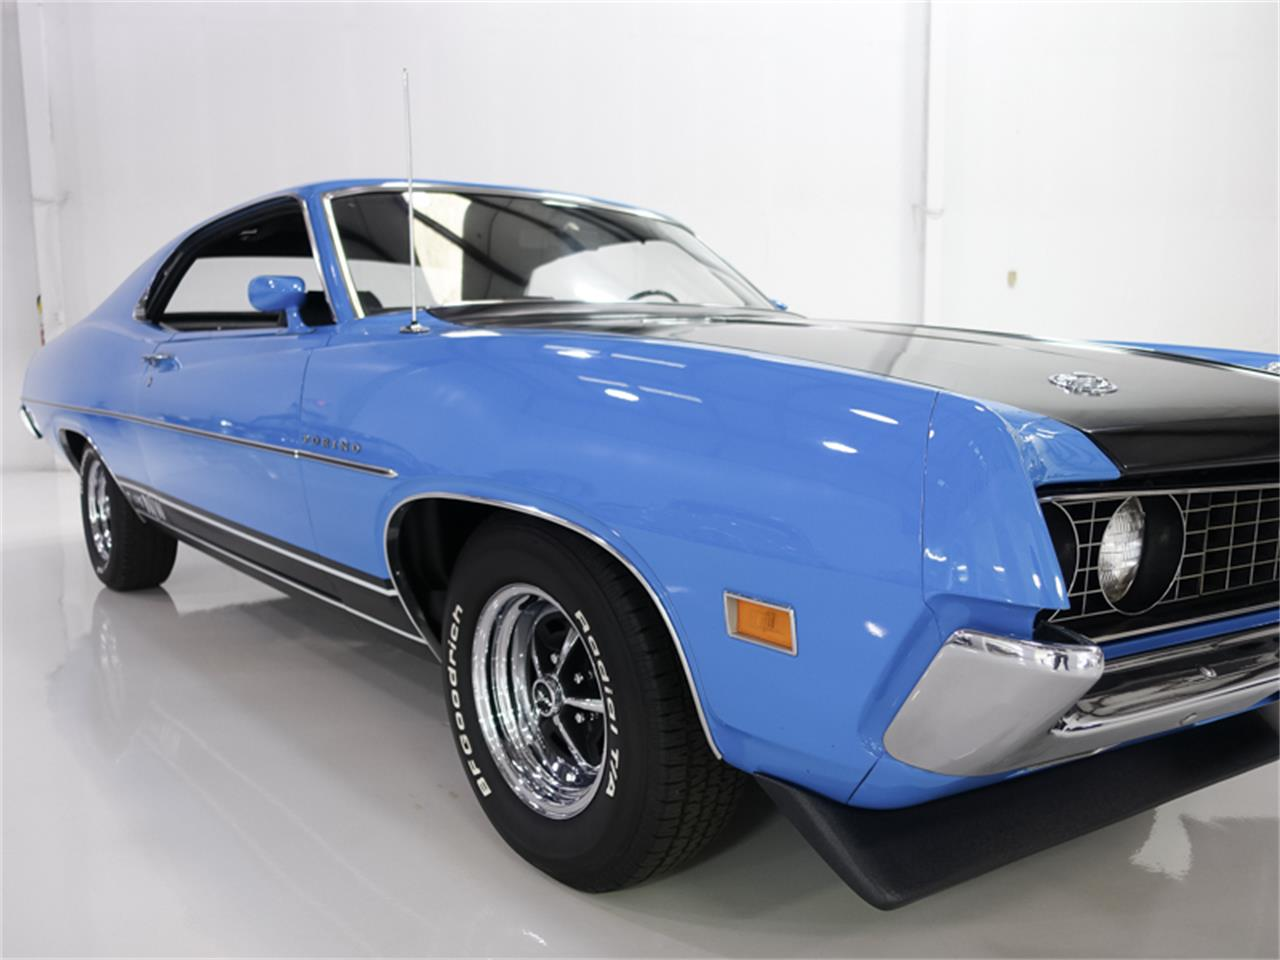 Large Picture of '70 Ford Torino located in Missouri Offered by Daniel Schmitt & Co. - MSON